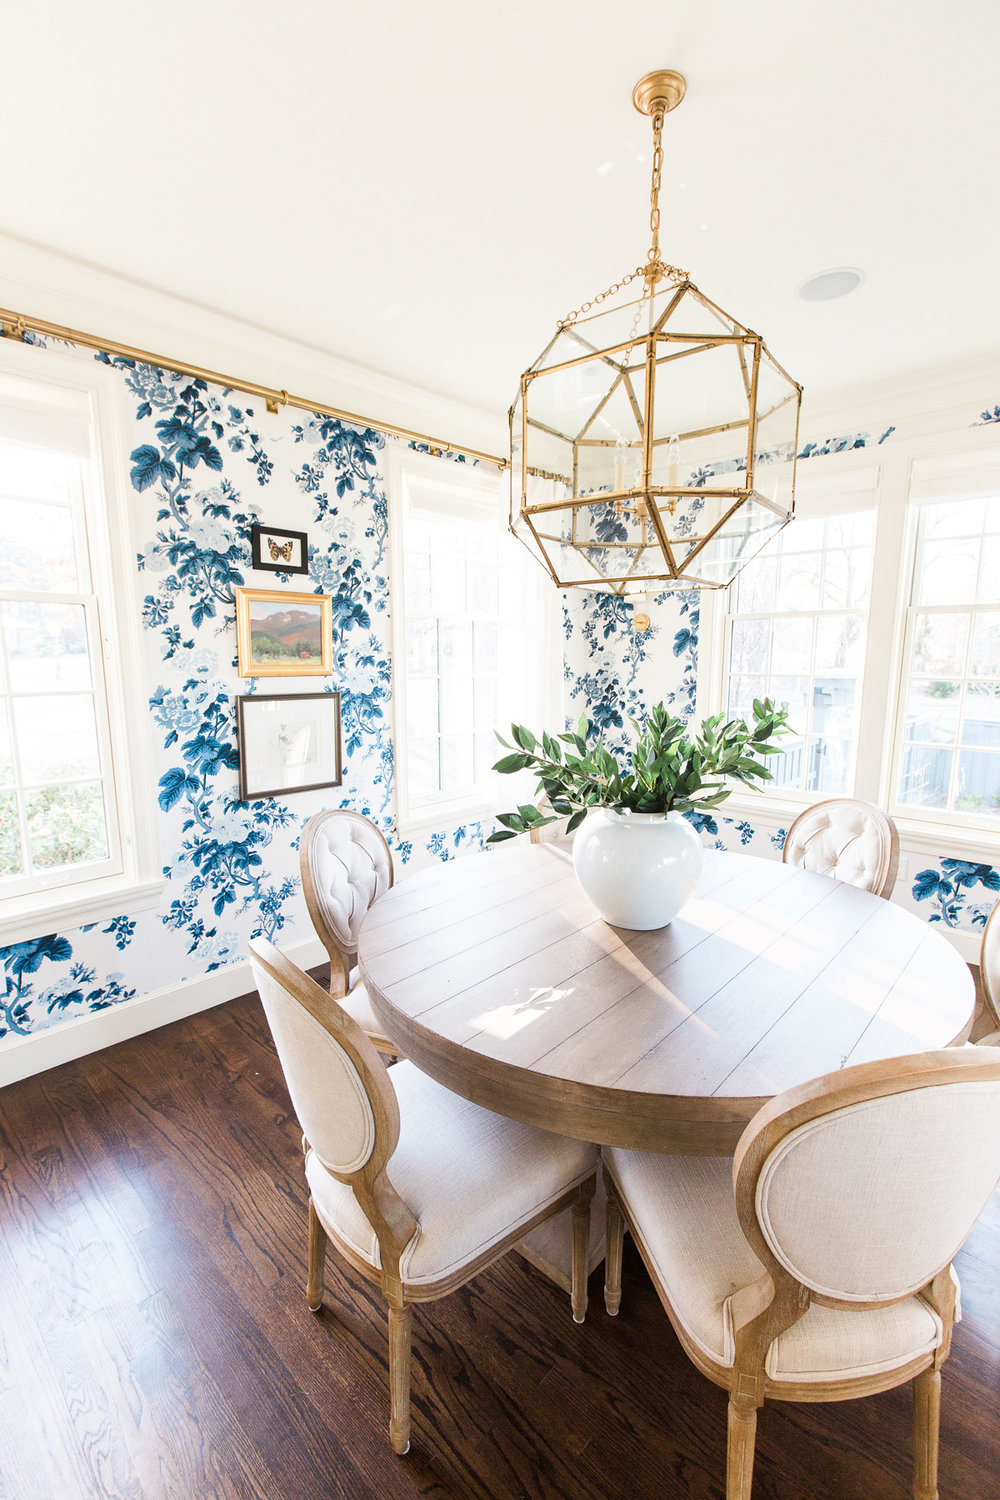 In A Square Room Like This One, Round Tables Really Help Make The Space  Easy To Navigate And Walk Through.